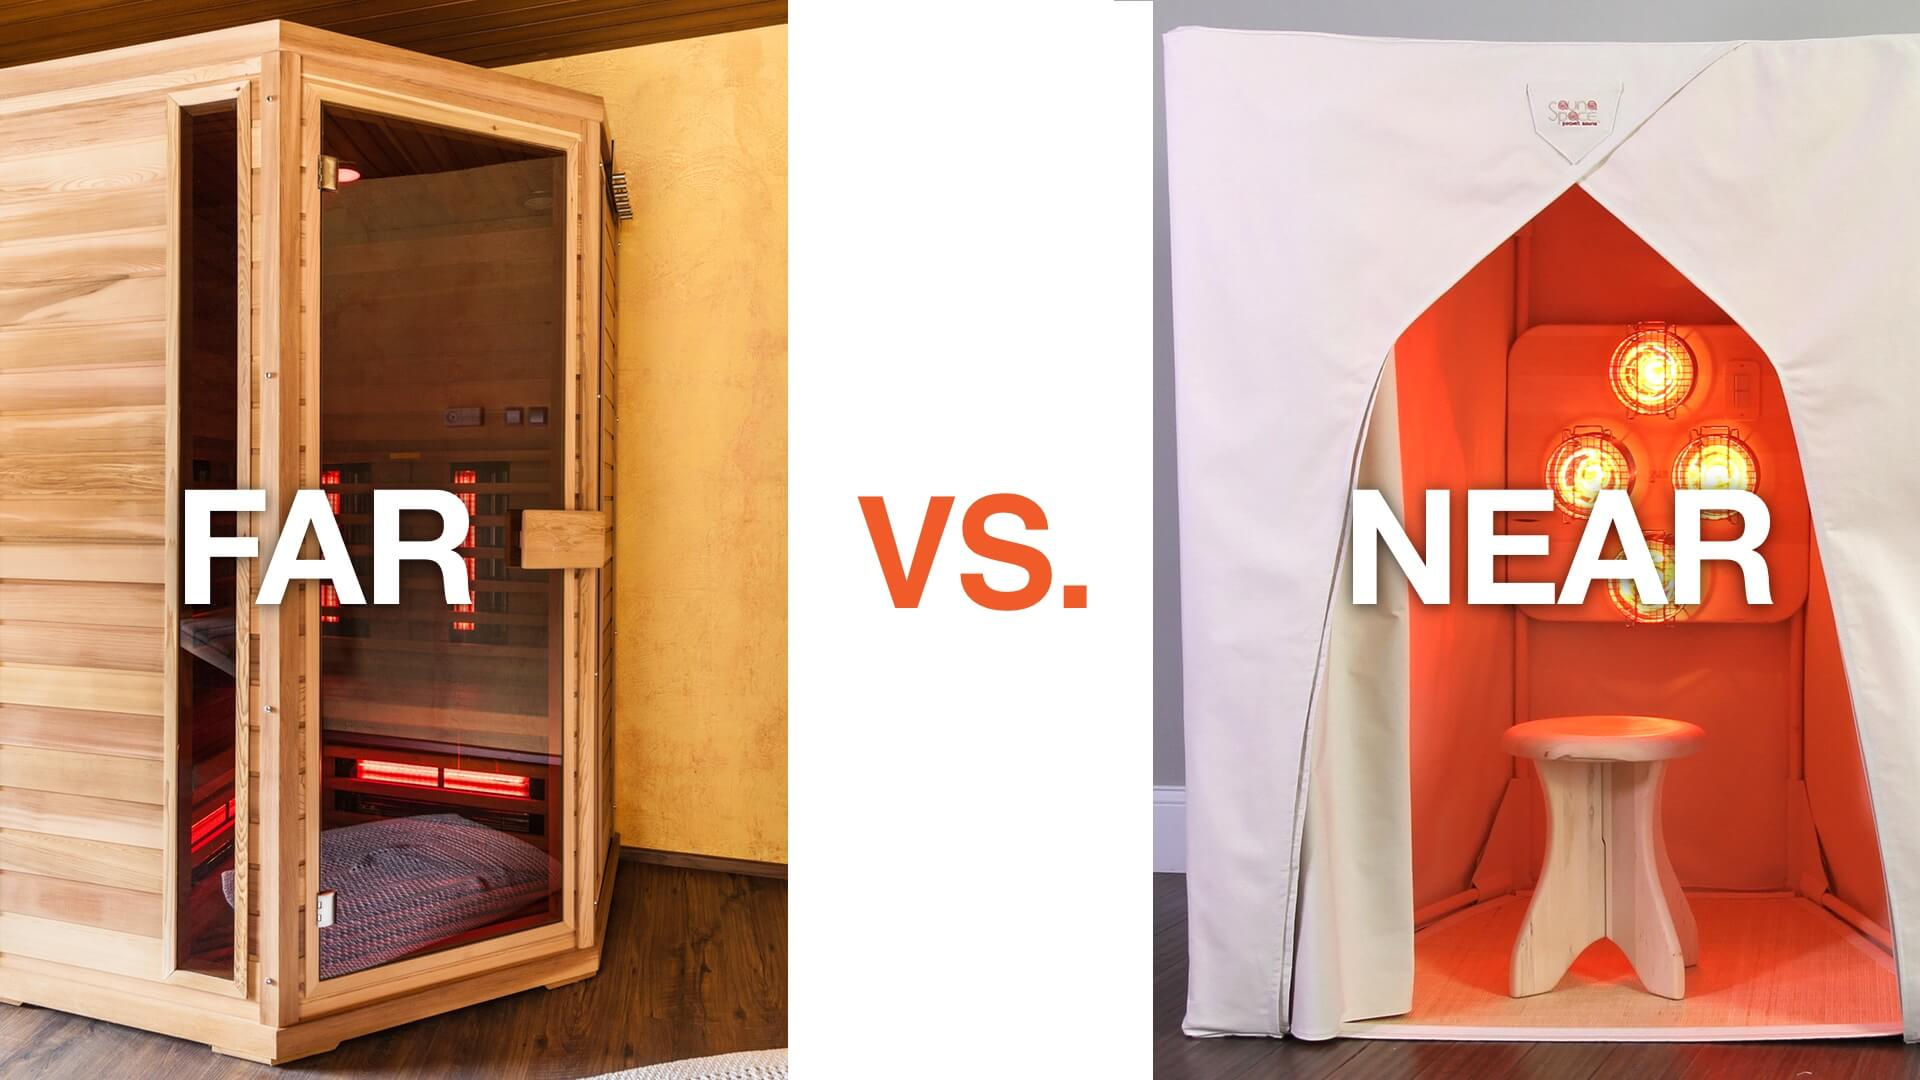 far-versus-near-infrared-sauna-which-is-better-mama-natural.jpg